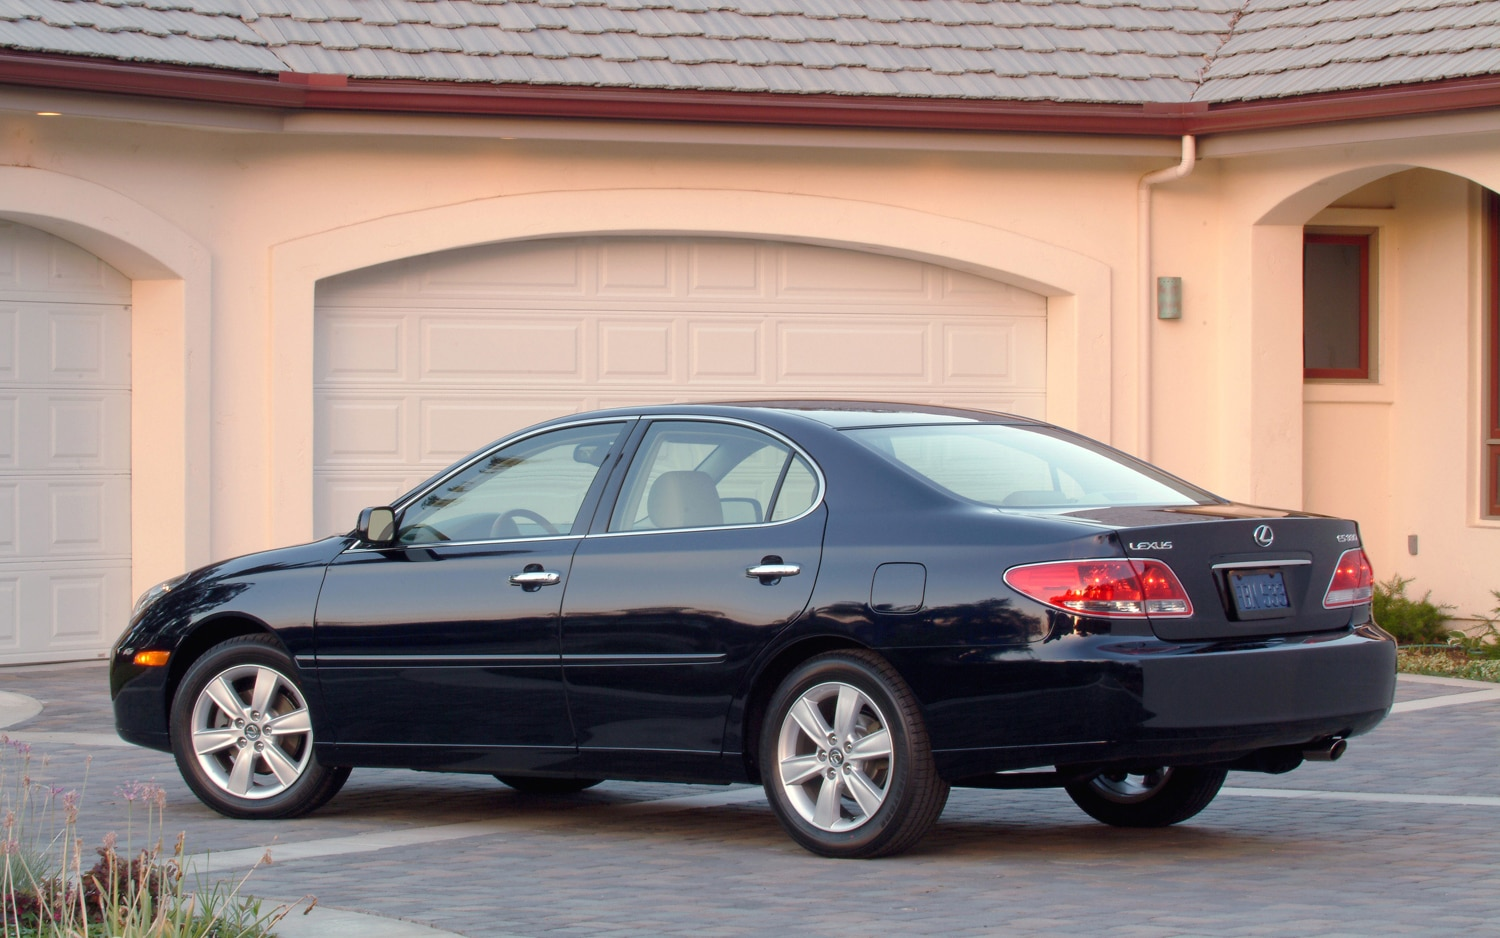 Toyota 0 60 >> Toyota and Lexus Recall 420,200 Vehicles for Power Steering Failure